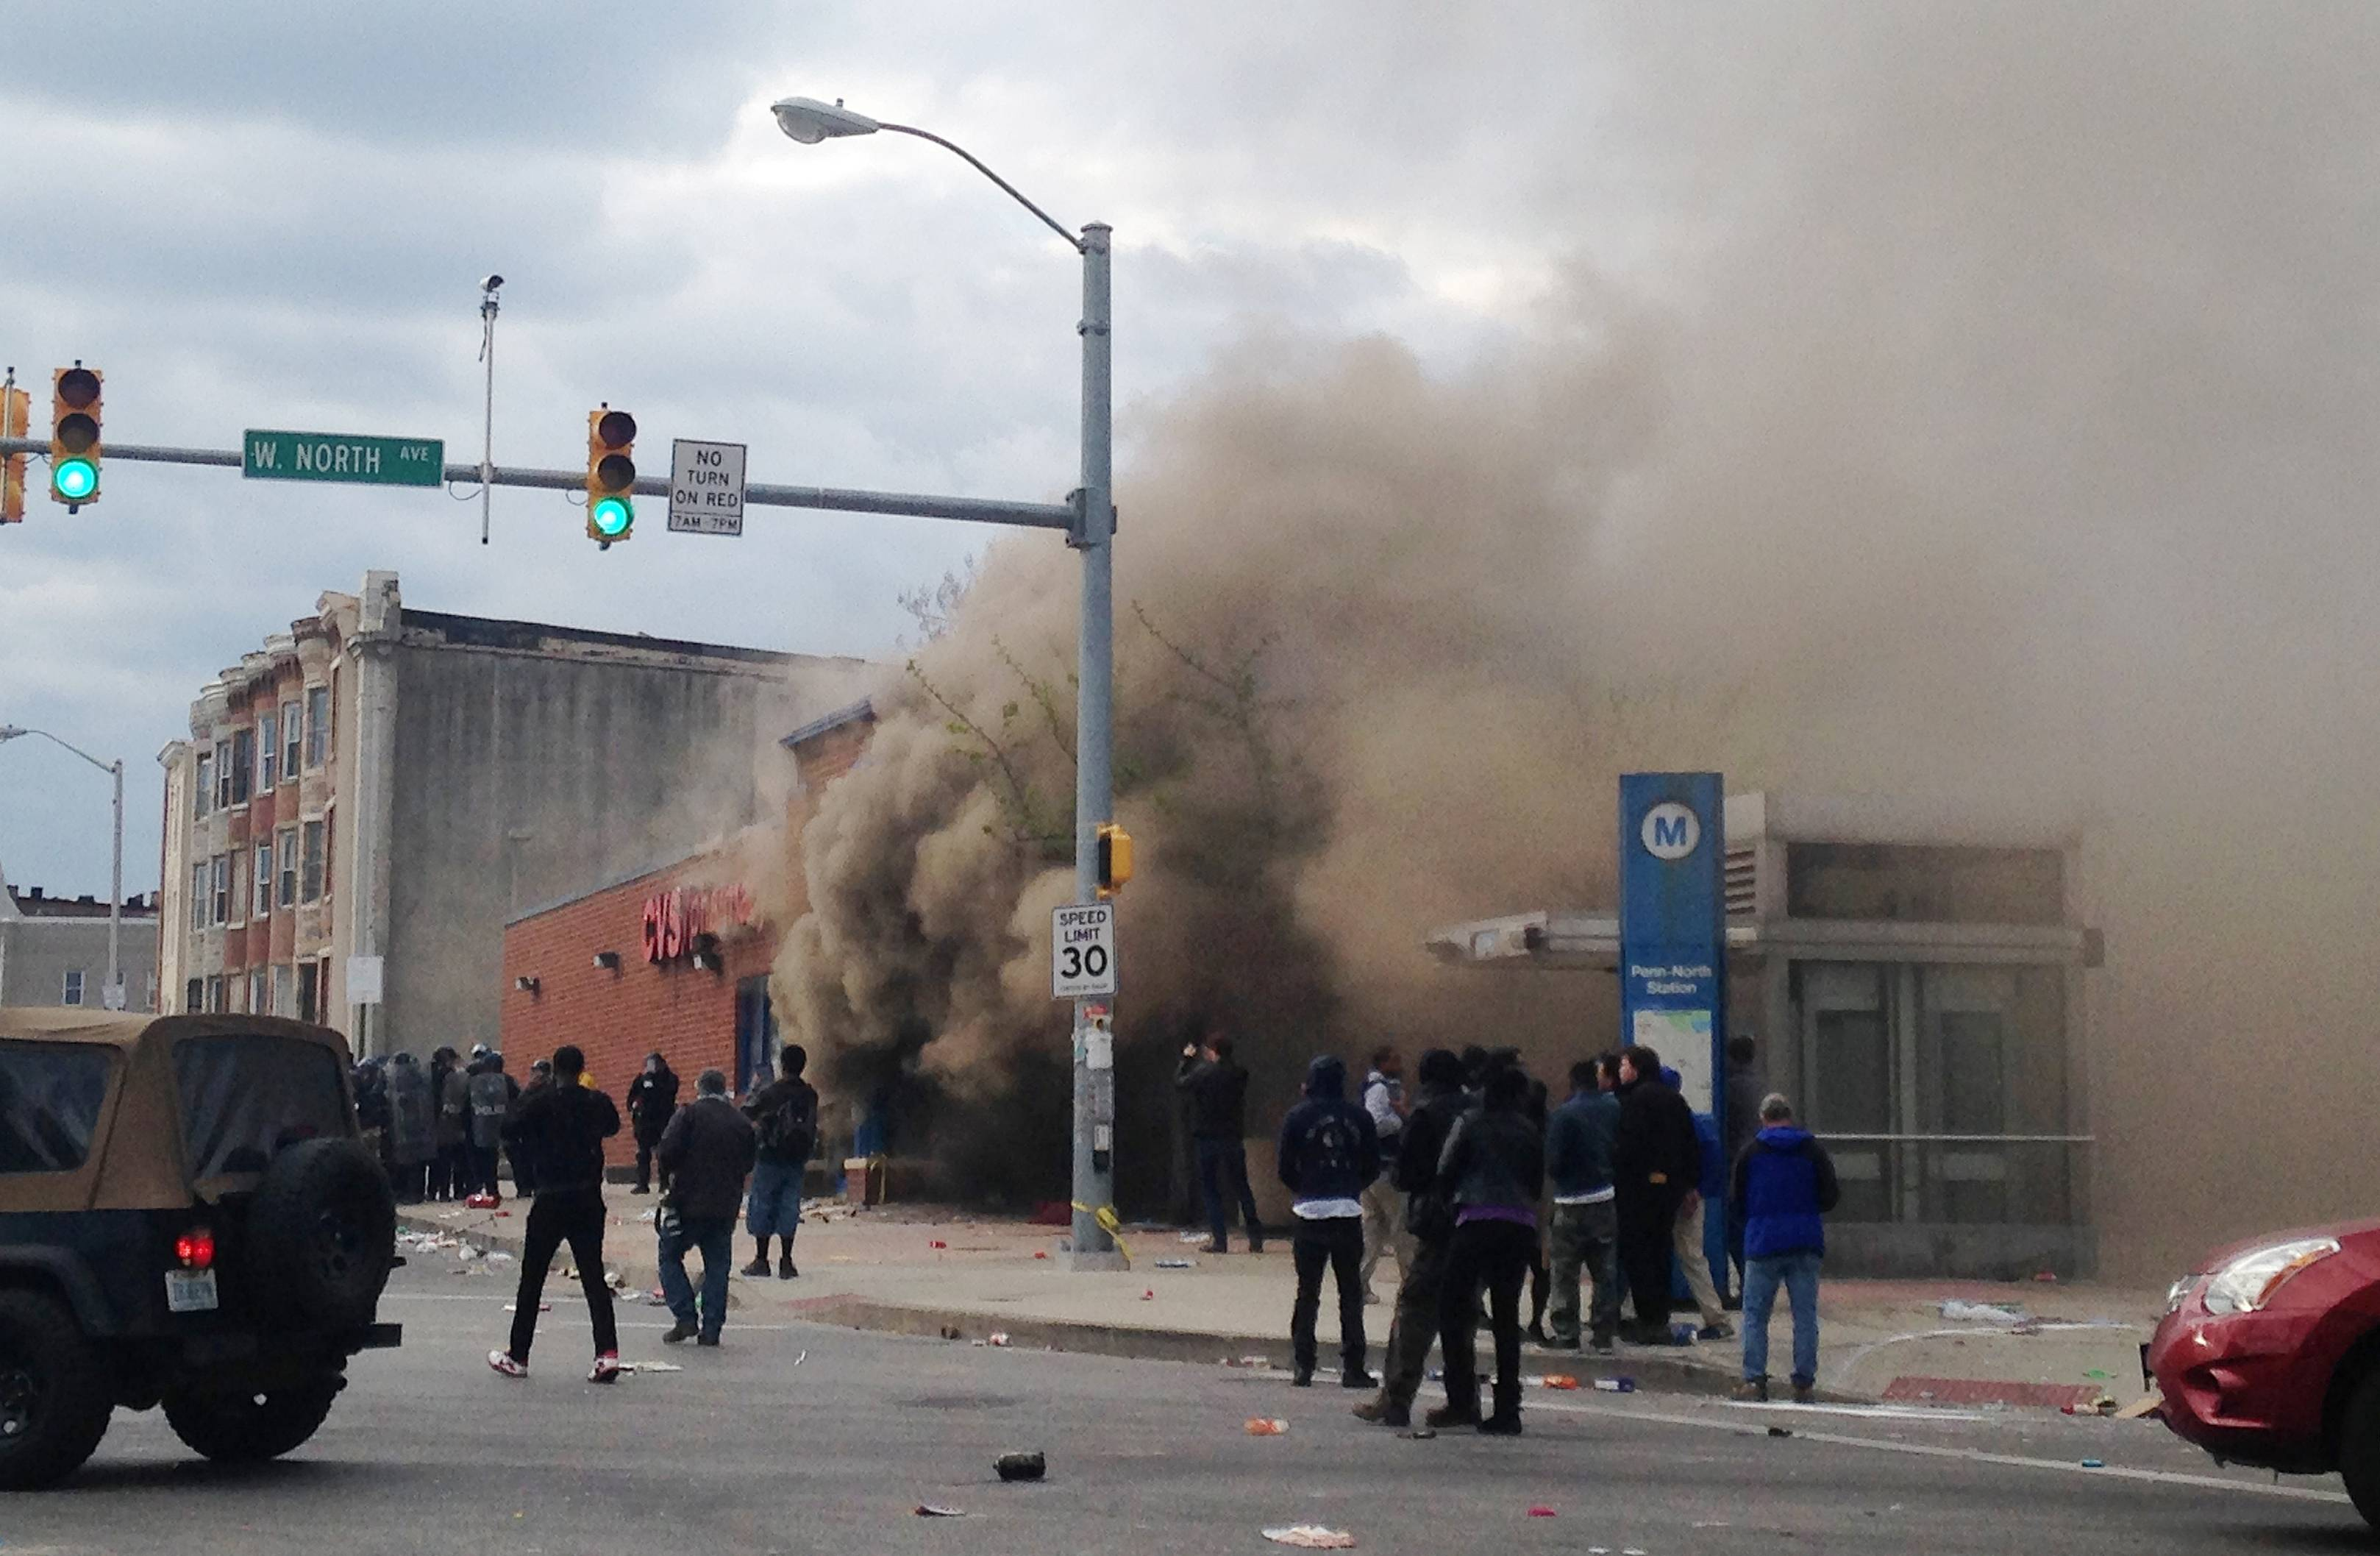 Firefighters battle a blaze at a construction site Monday after rioters plunged part of Baltimore into chaos, torching a pharmacy, setting police cars ablaze and throwing bricks at officers.